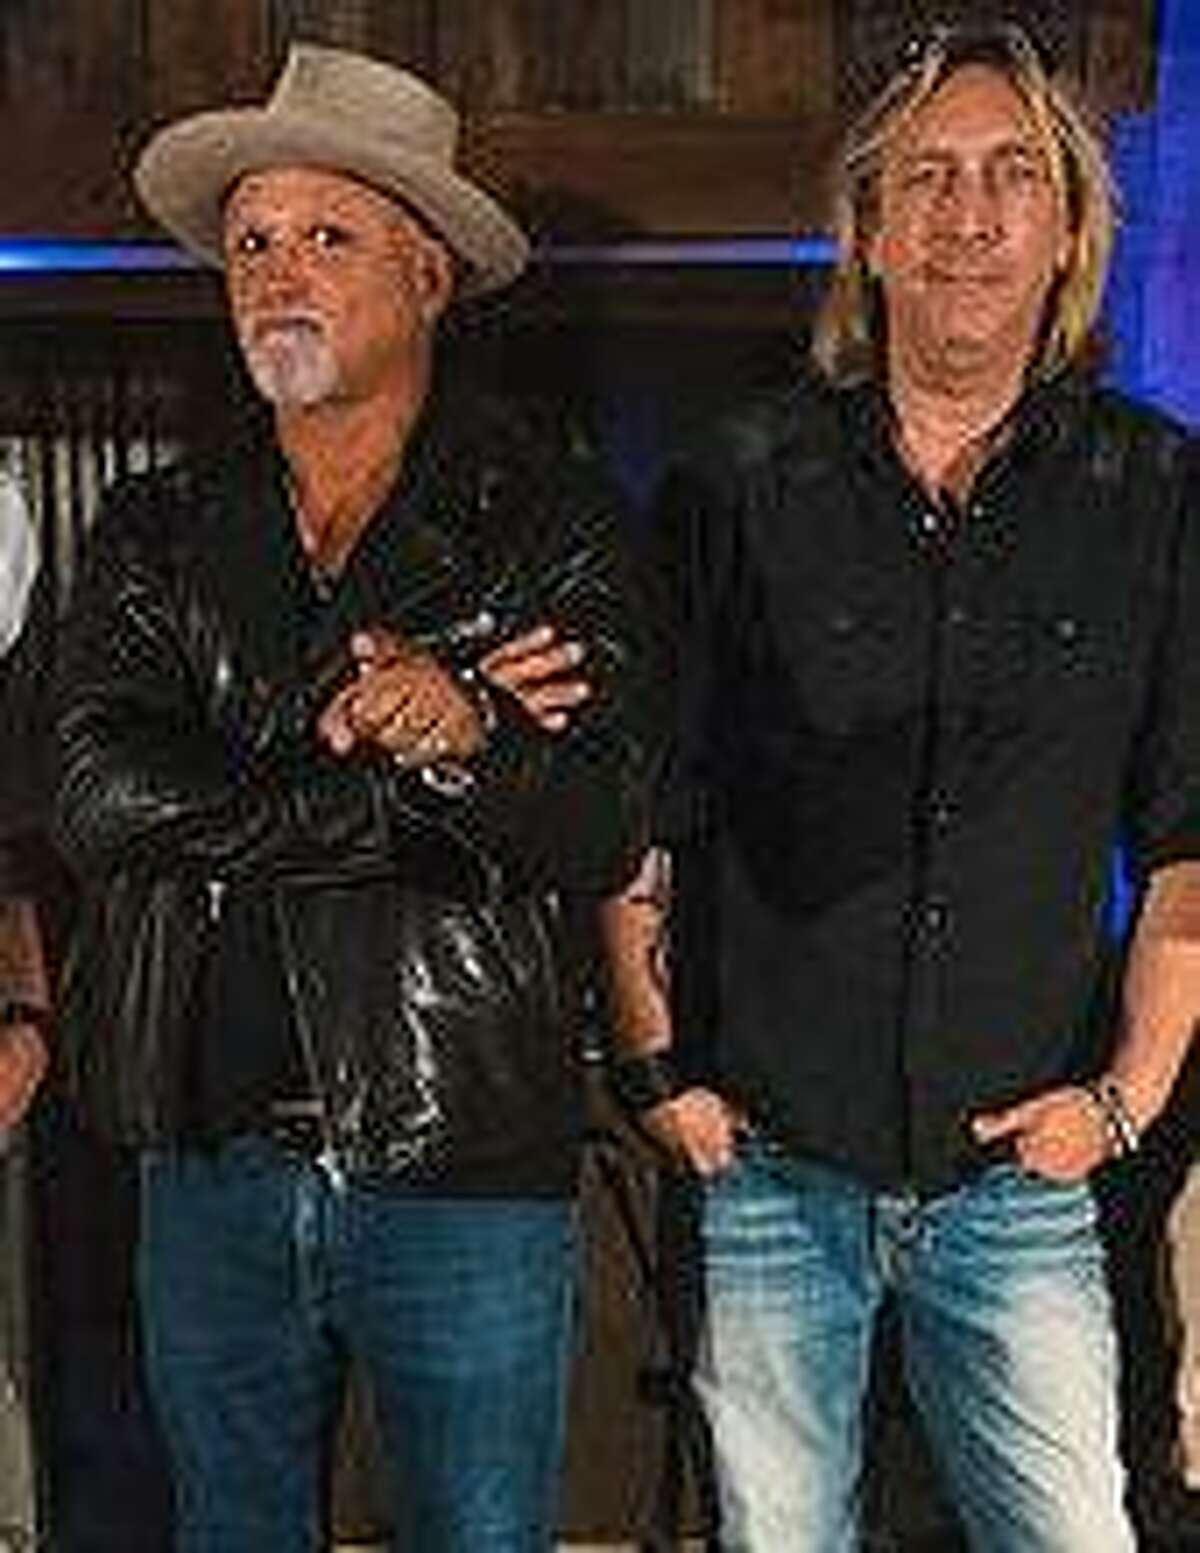 Derek St Holmes singer for Ted Nugget and Grammy Winning Guitarist Paul Nelson (Johnny Winter/The Paul Nelson Band) were seen at Peaches restaurant in Norwalk last week.